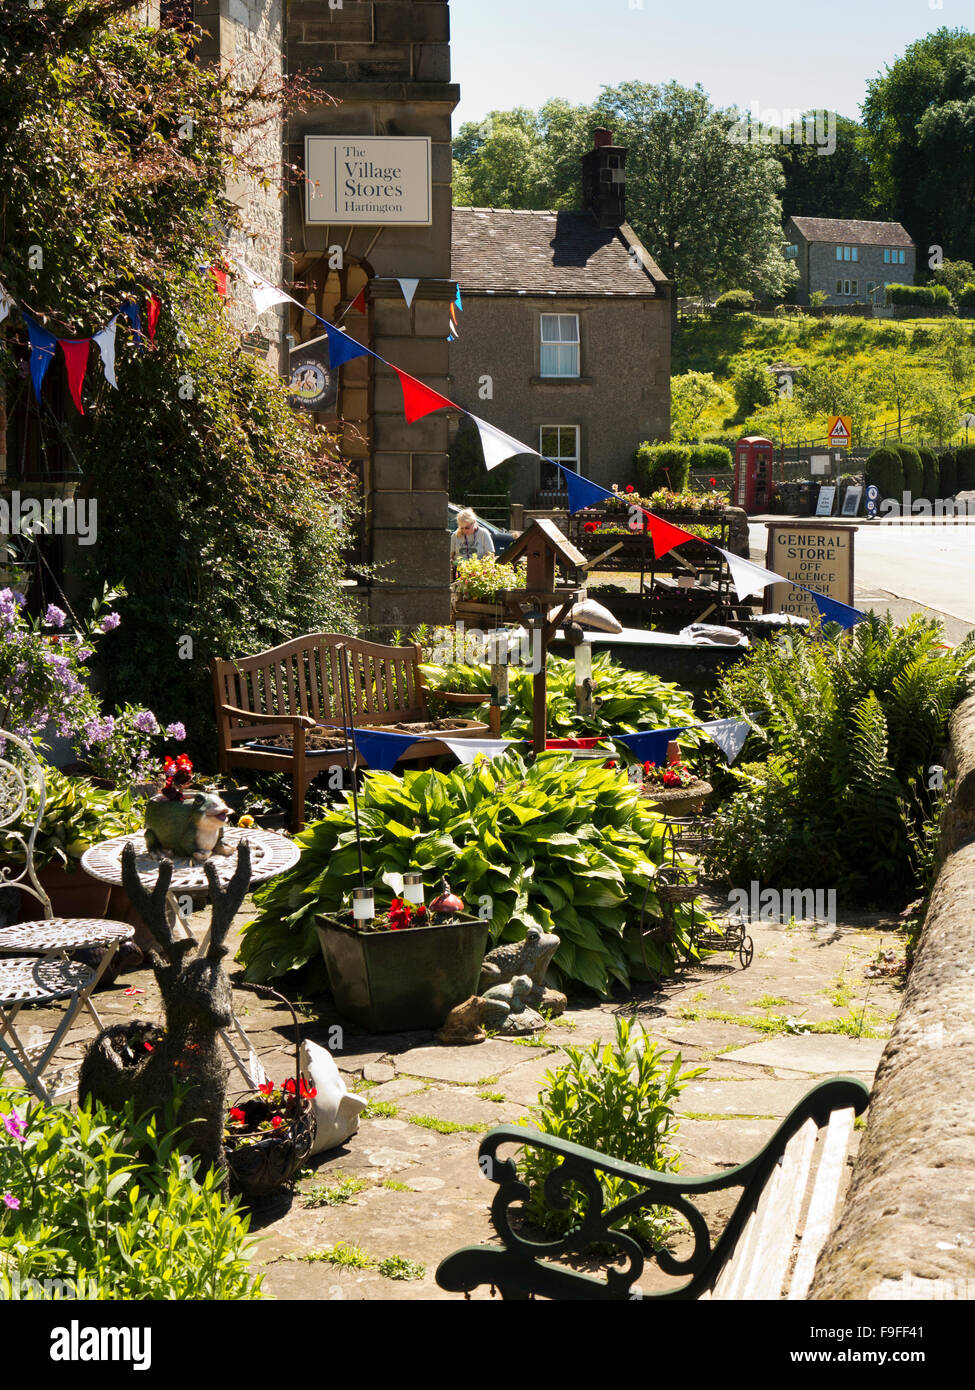 UK, England, Derbyshire, Hartington, Village Stores, bunting above outdoor café tables - Stock Image